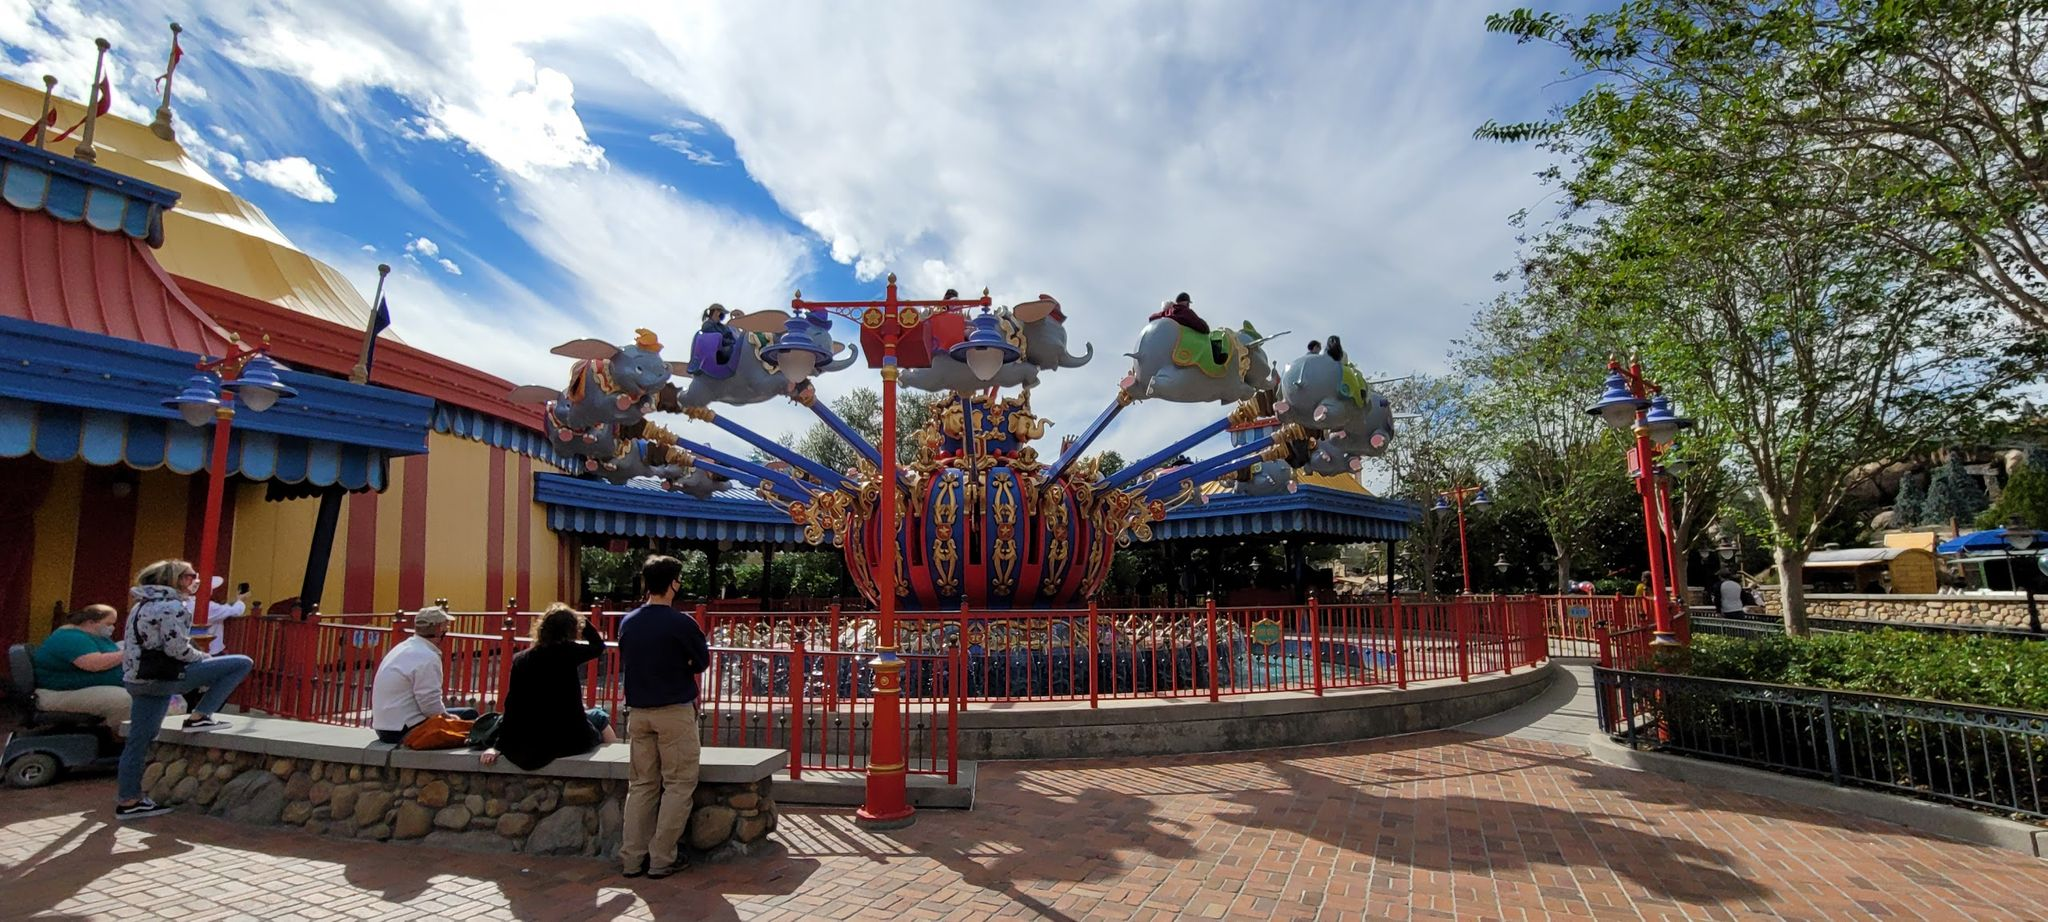 Storybook Circus in the Magic Kingdom to receive 50th Anniversary Updates 1